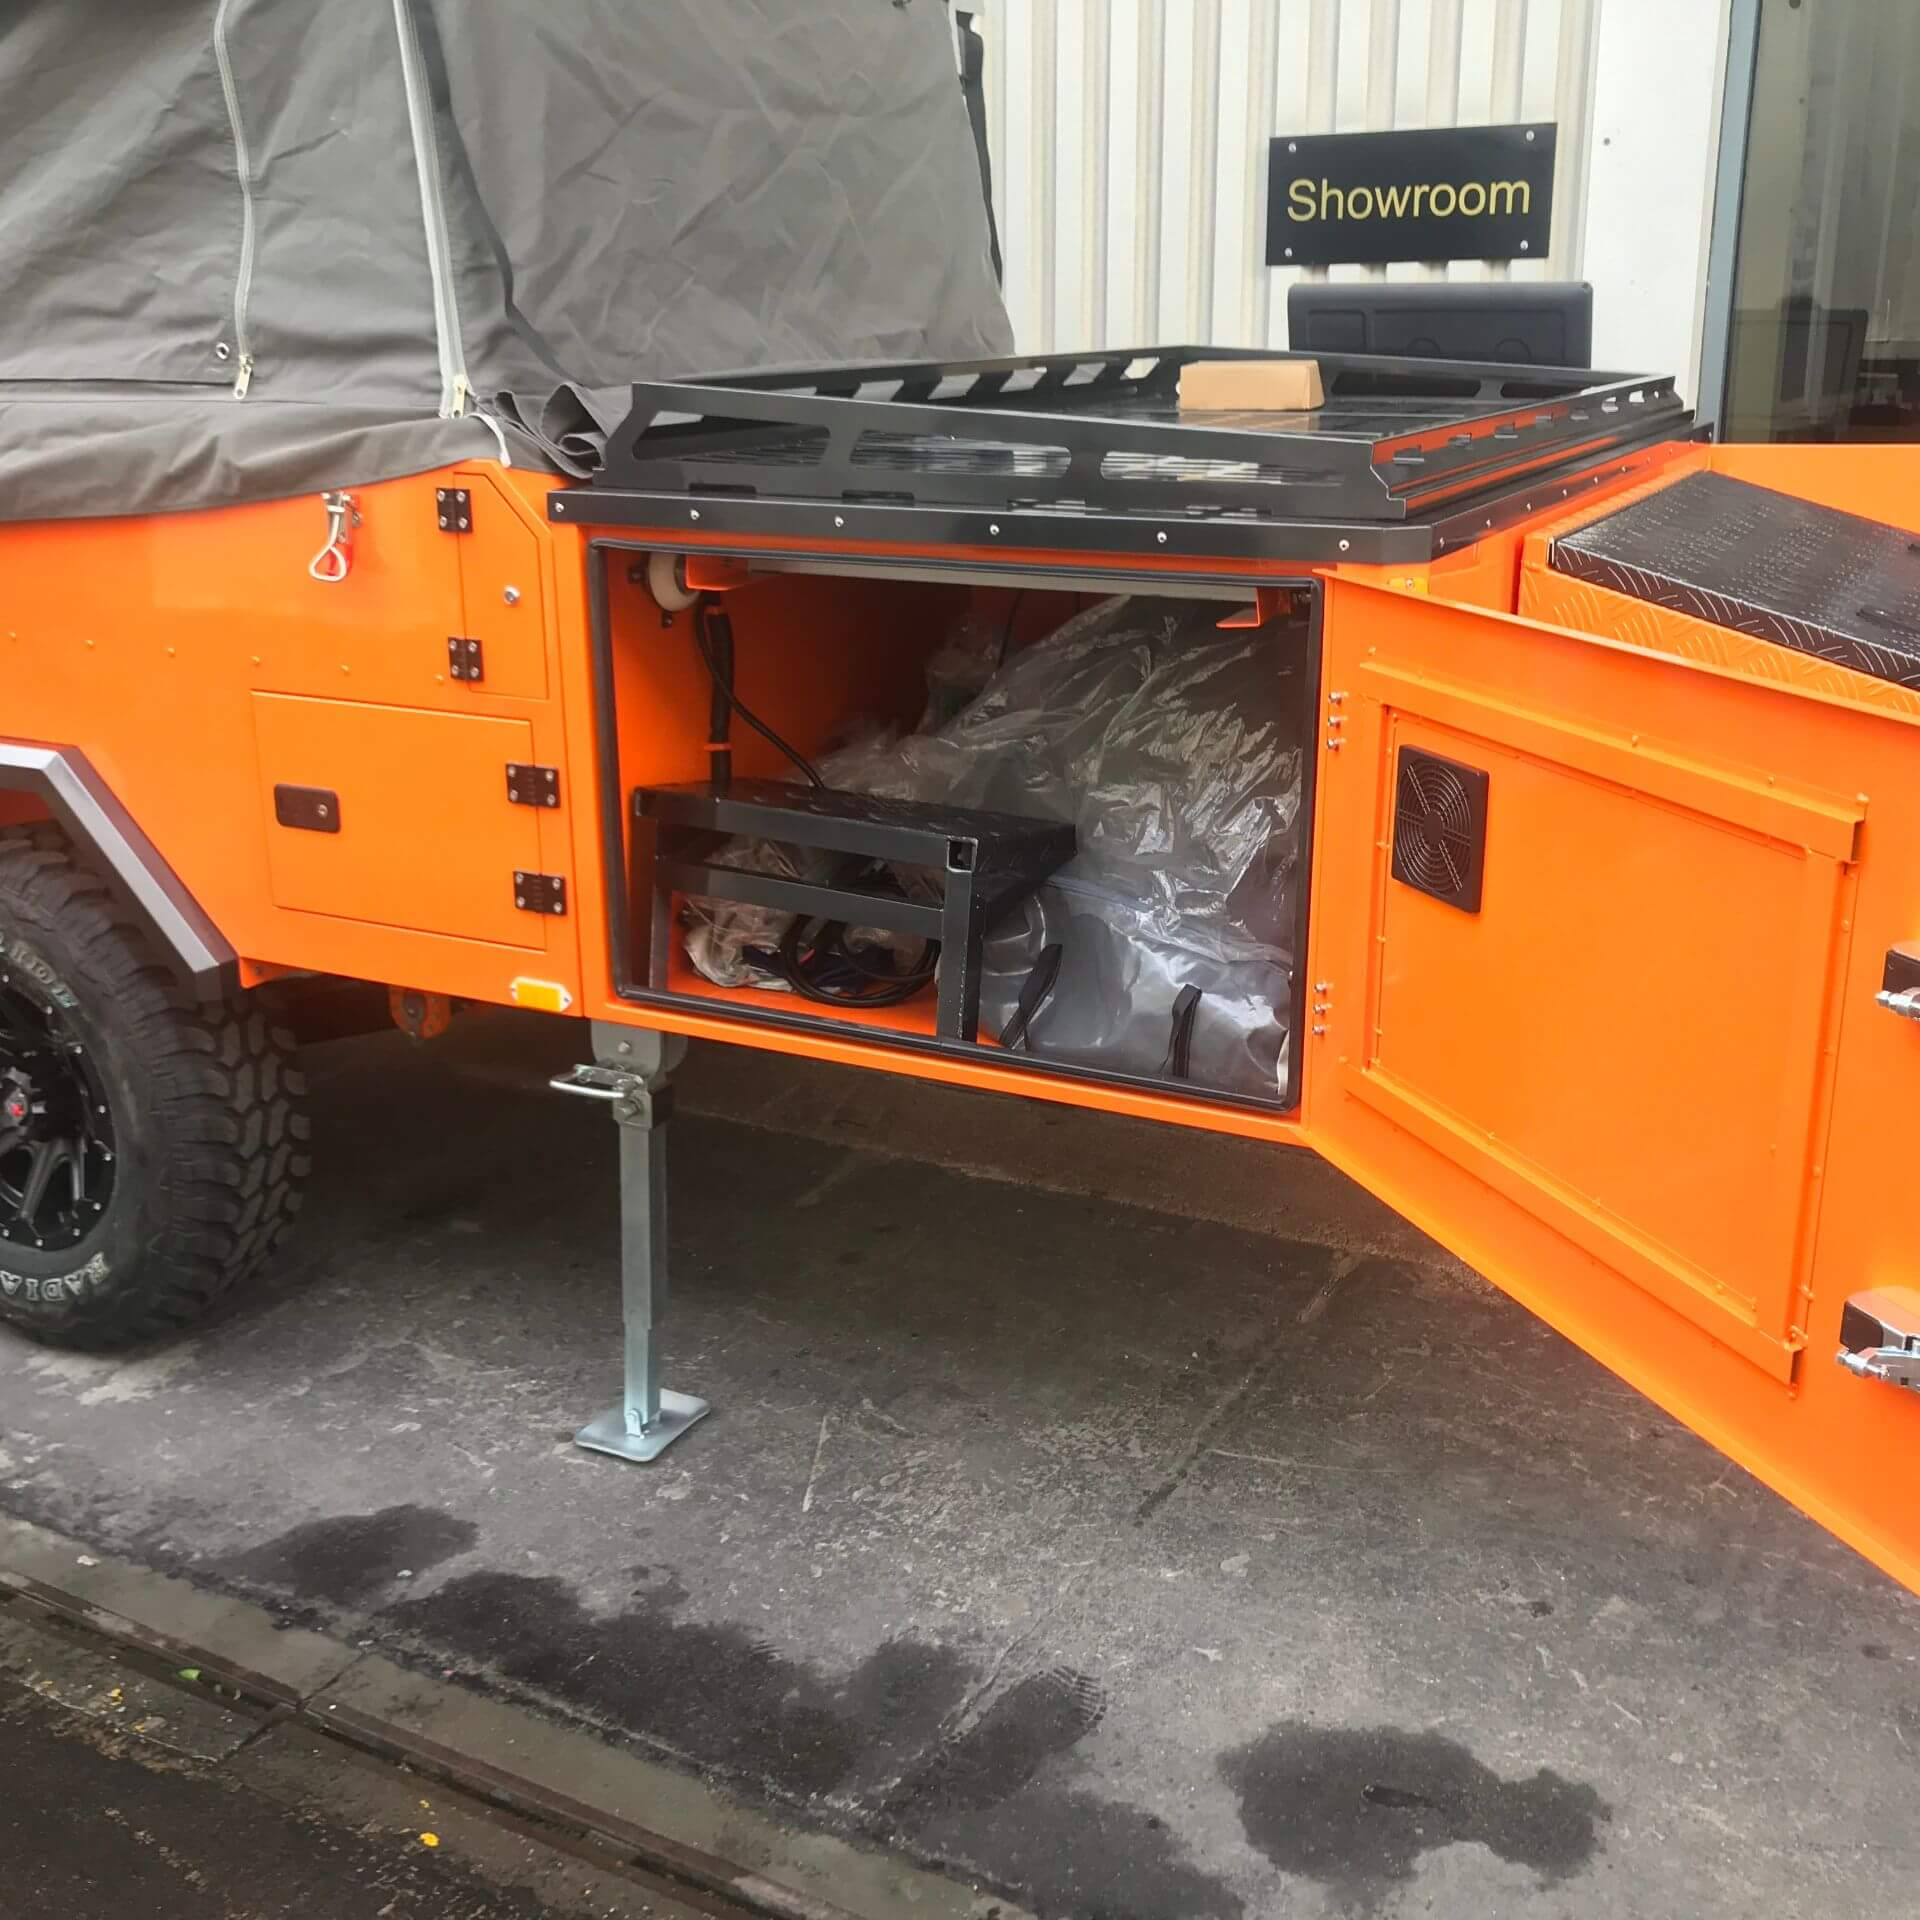 Direct4x4 Goliath Expedition Trailer